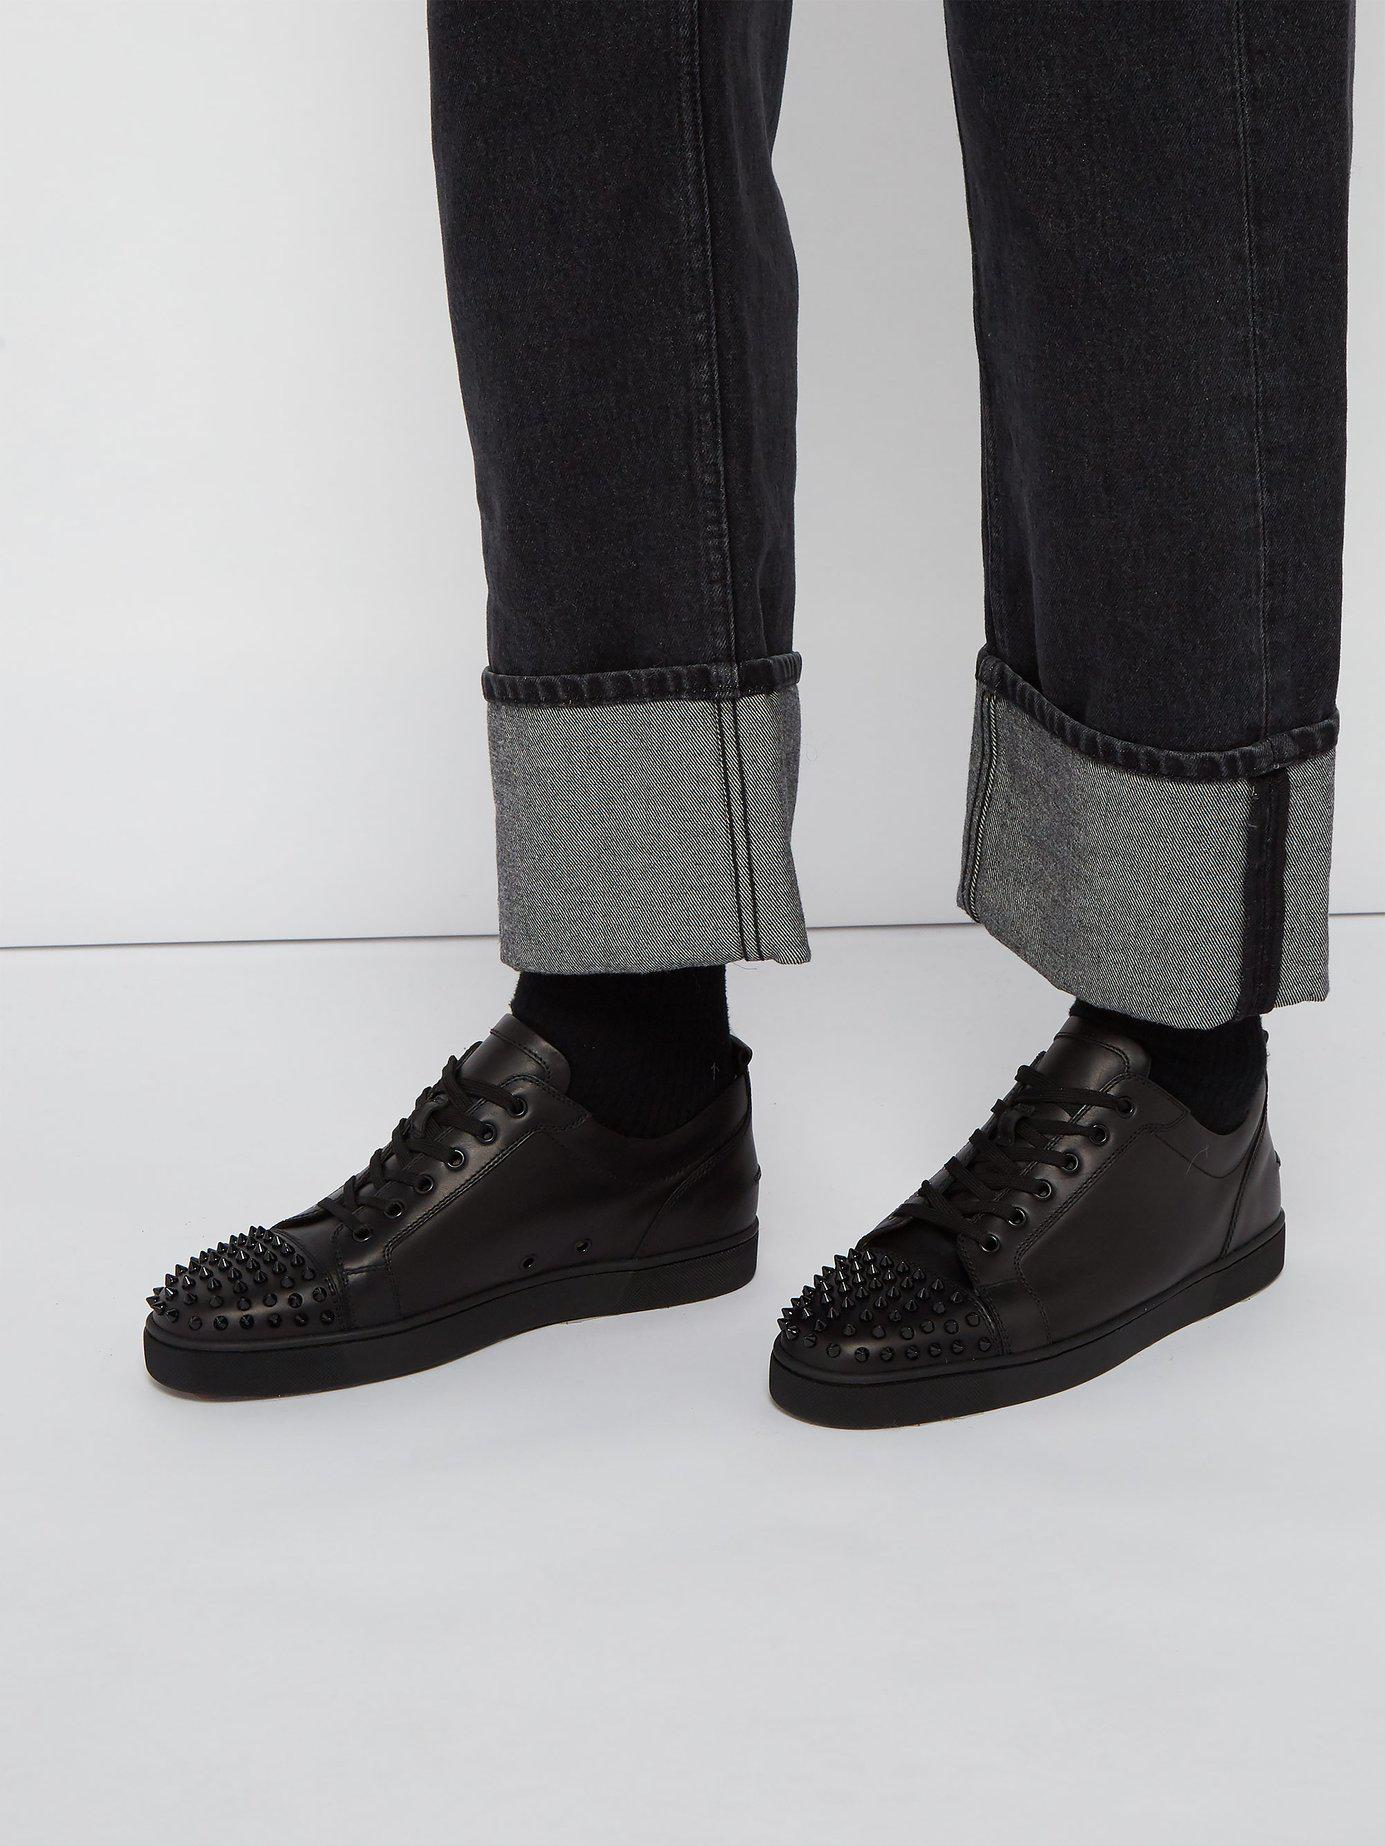 75874986789 Lyst - Christian Louboutin Louis Junior Low Top Leather Trainers in Black  for Men